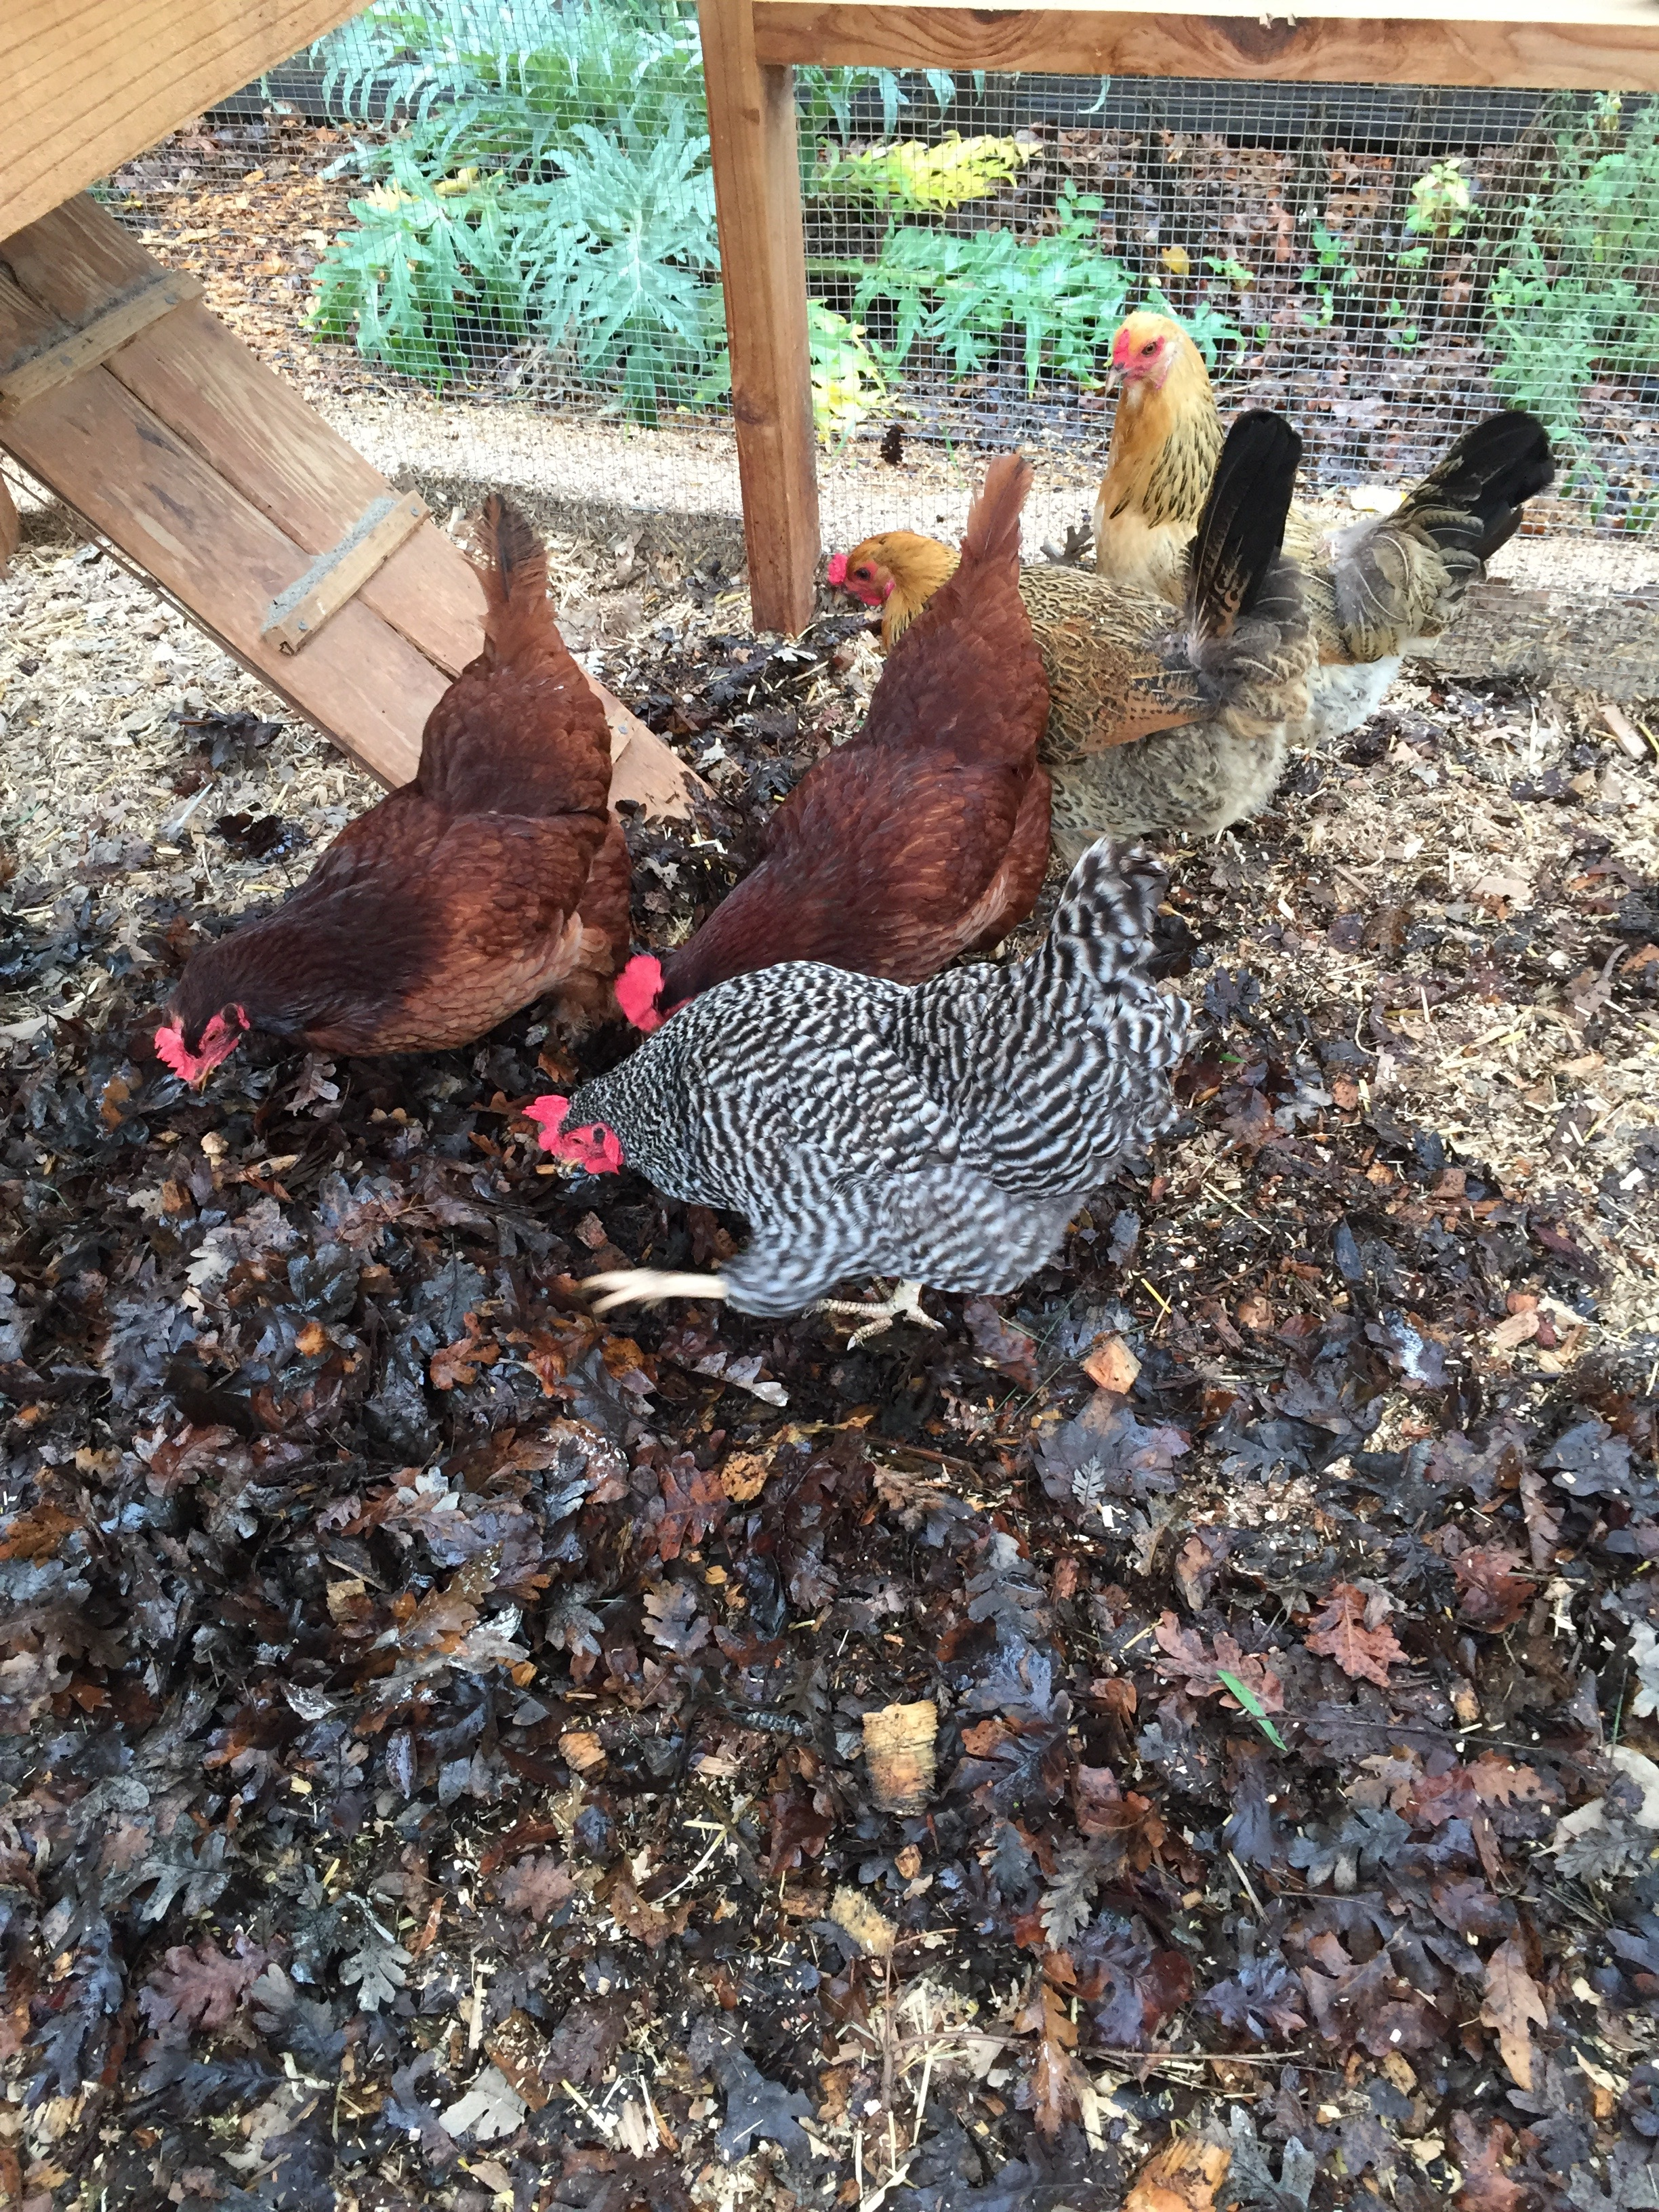 The chickens last spring, searching for bugs in a pile of leaves I brought in